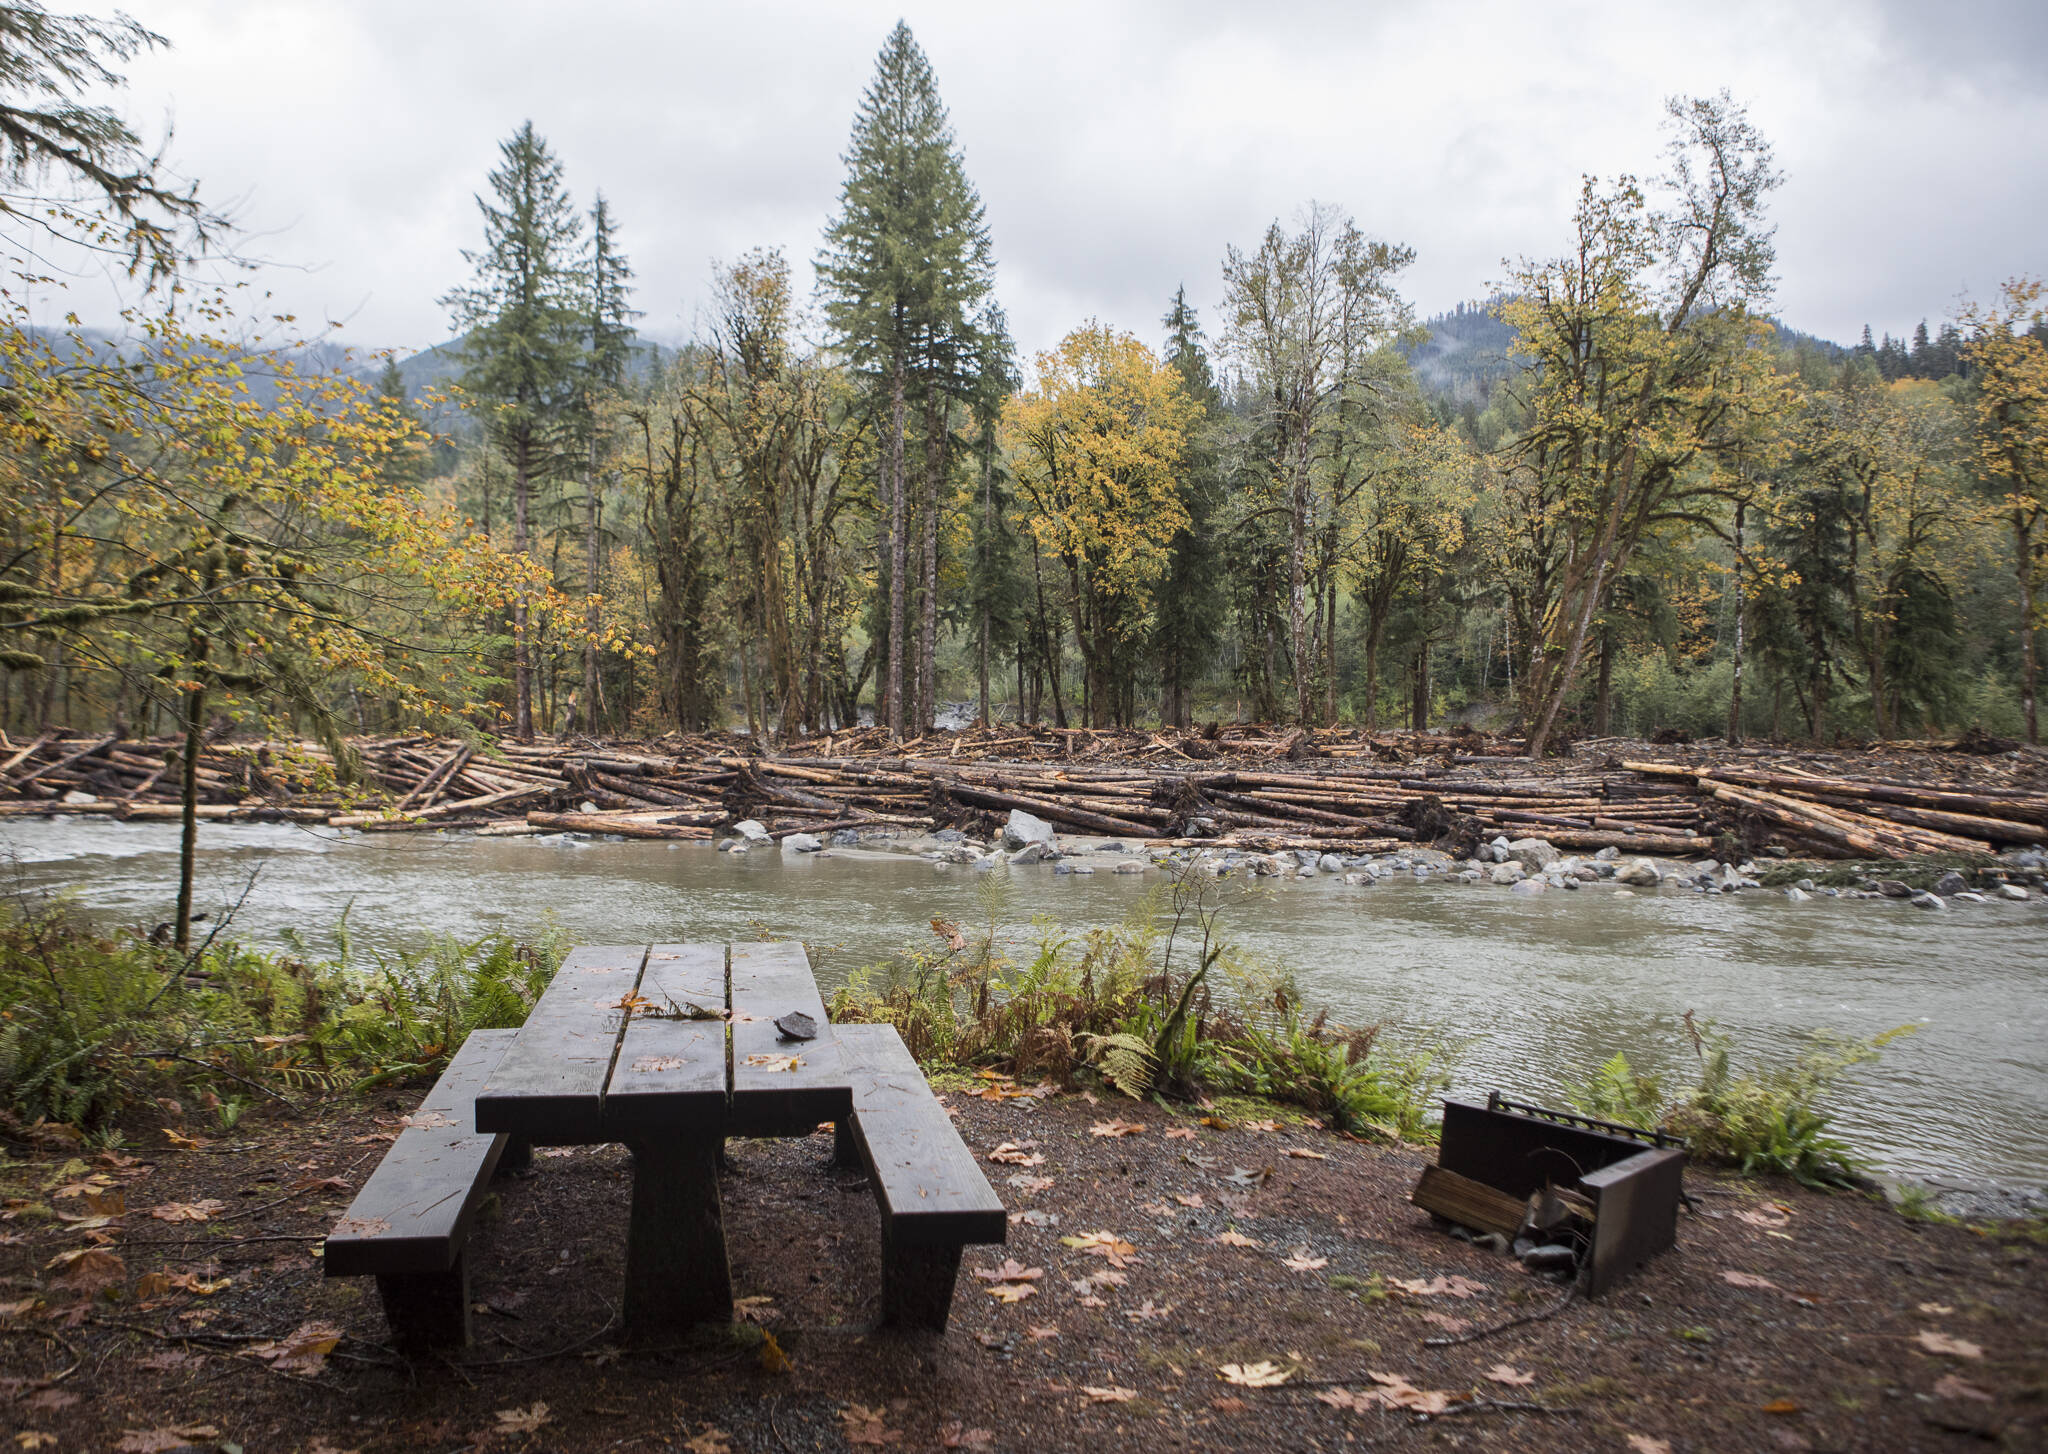 A large woody material jam, made out of logged trees, is visible from a new river-side campsite at the Gold Basin Campground on Wednesday in Verlot. (Olivia Vanni / The Herald)